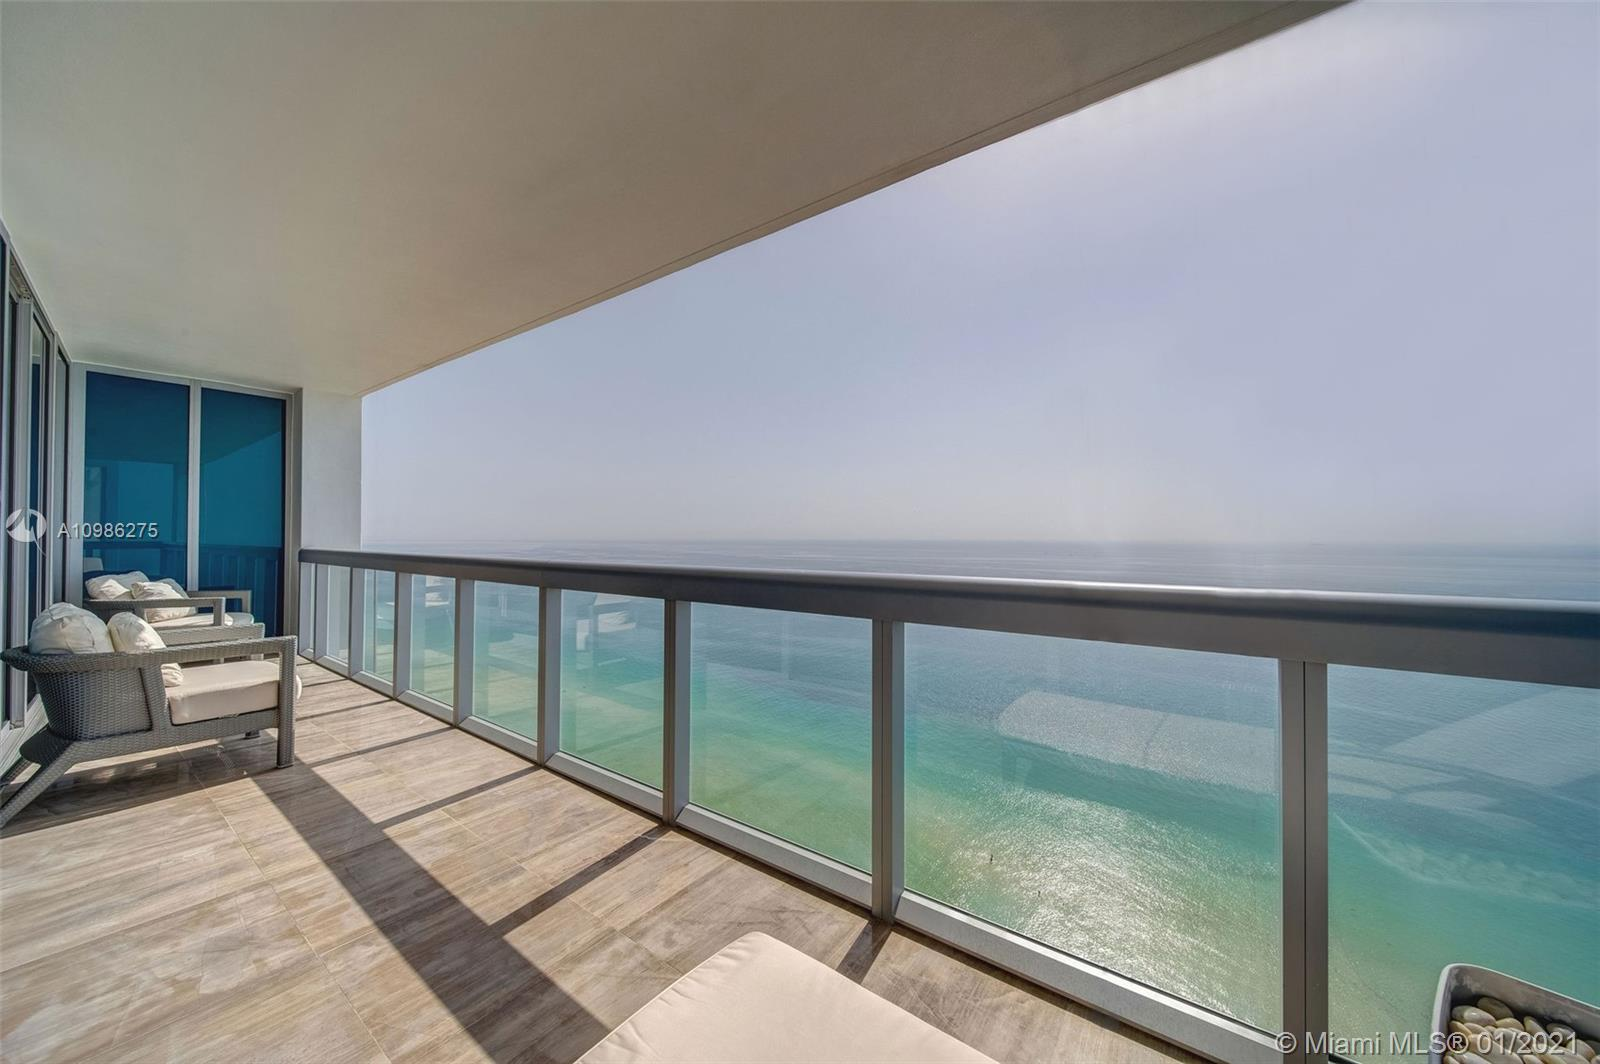 Breathtaking, flow-through double corner designer unit floating on the 31st floor of the exclusive Carillon Wellness Resort and Spa. A luxurious lifestyle awaits with tasteful furnishings throughout, floor-to-ceiling windows of direct ocean, intracoastal and skyline views of Miami. Residency includes access to Carillon Resort's exclusive services and amenities which has been voted as a number 1 Resort in Florida. Five star amenities with 4 gorgeous pools, private beach service/attendants, salon, indoor rock climbing, and a 70,000-sqft spa & wellness facility offering100+ classes per week in yoga, Zumba, spin, etc., Organic Restaurants onsite & multilevel Publix & Starbucks across the street. Super location, near to main travel arteries in the heart of Miami Beach.